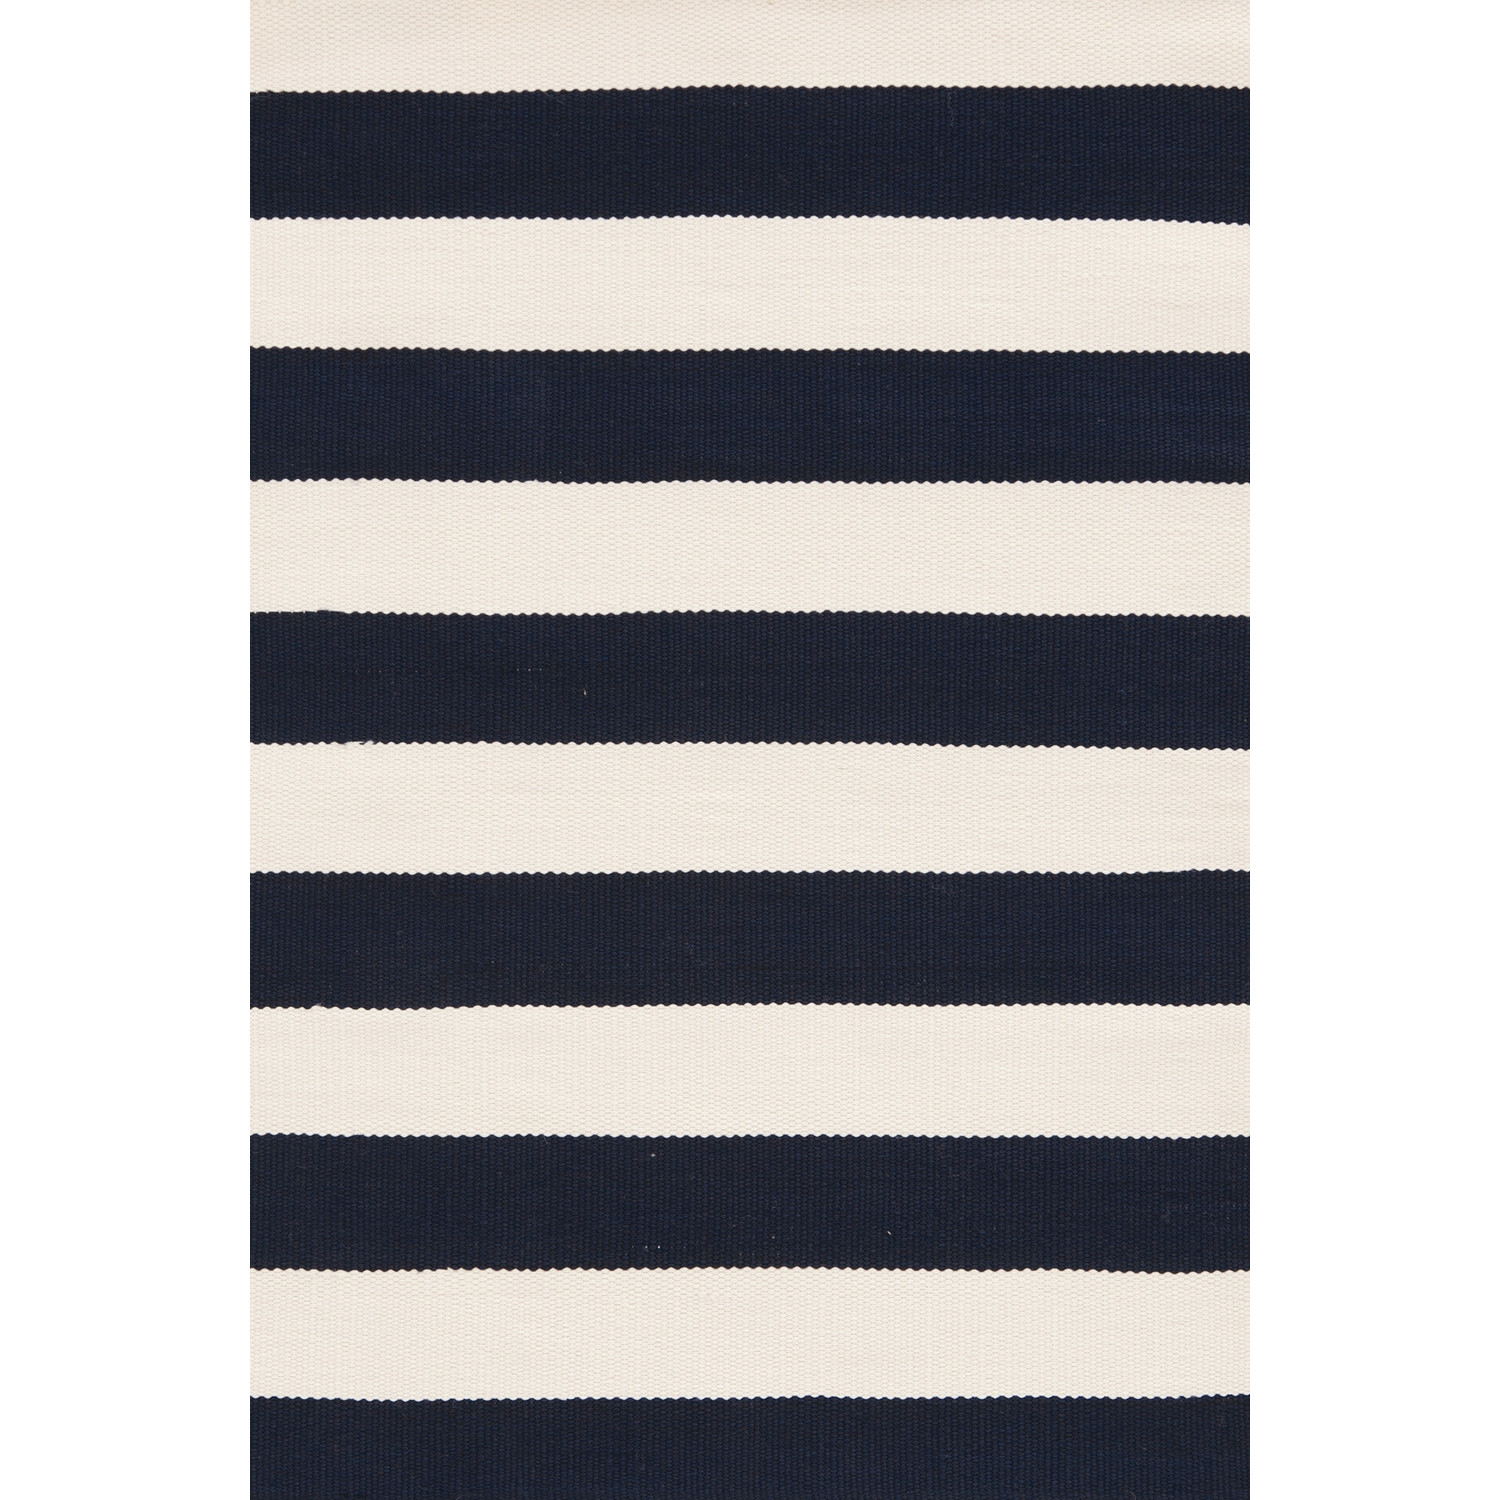 wonderful Dash And Albert Rugs catamaran ivory and navy blue stripped for floor decor ideas